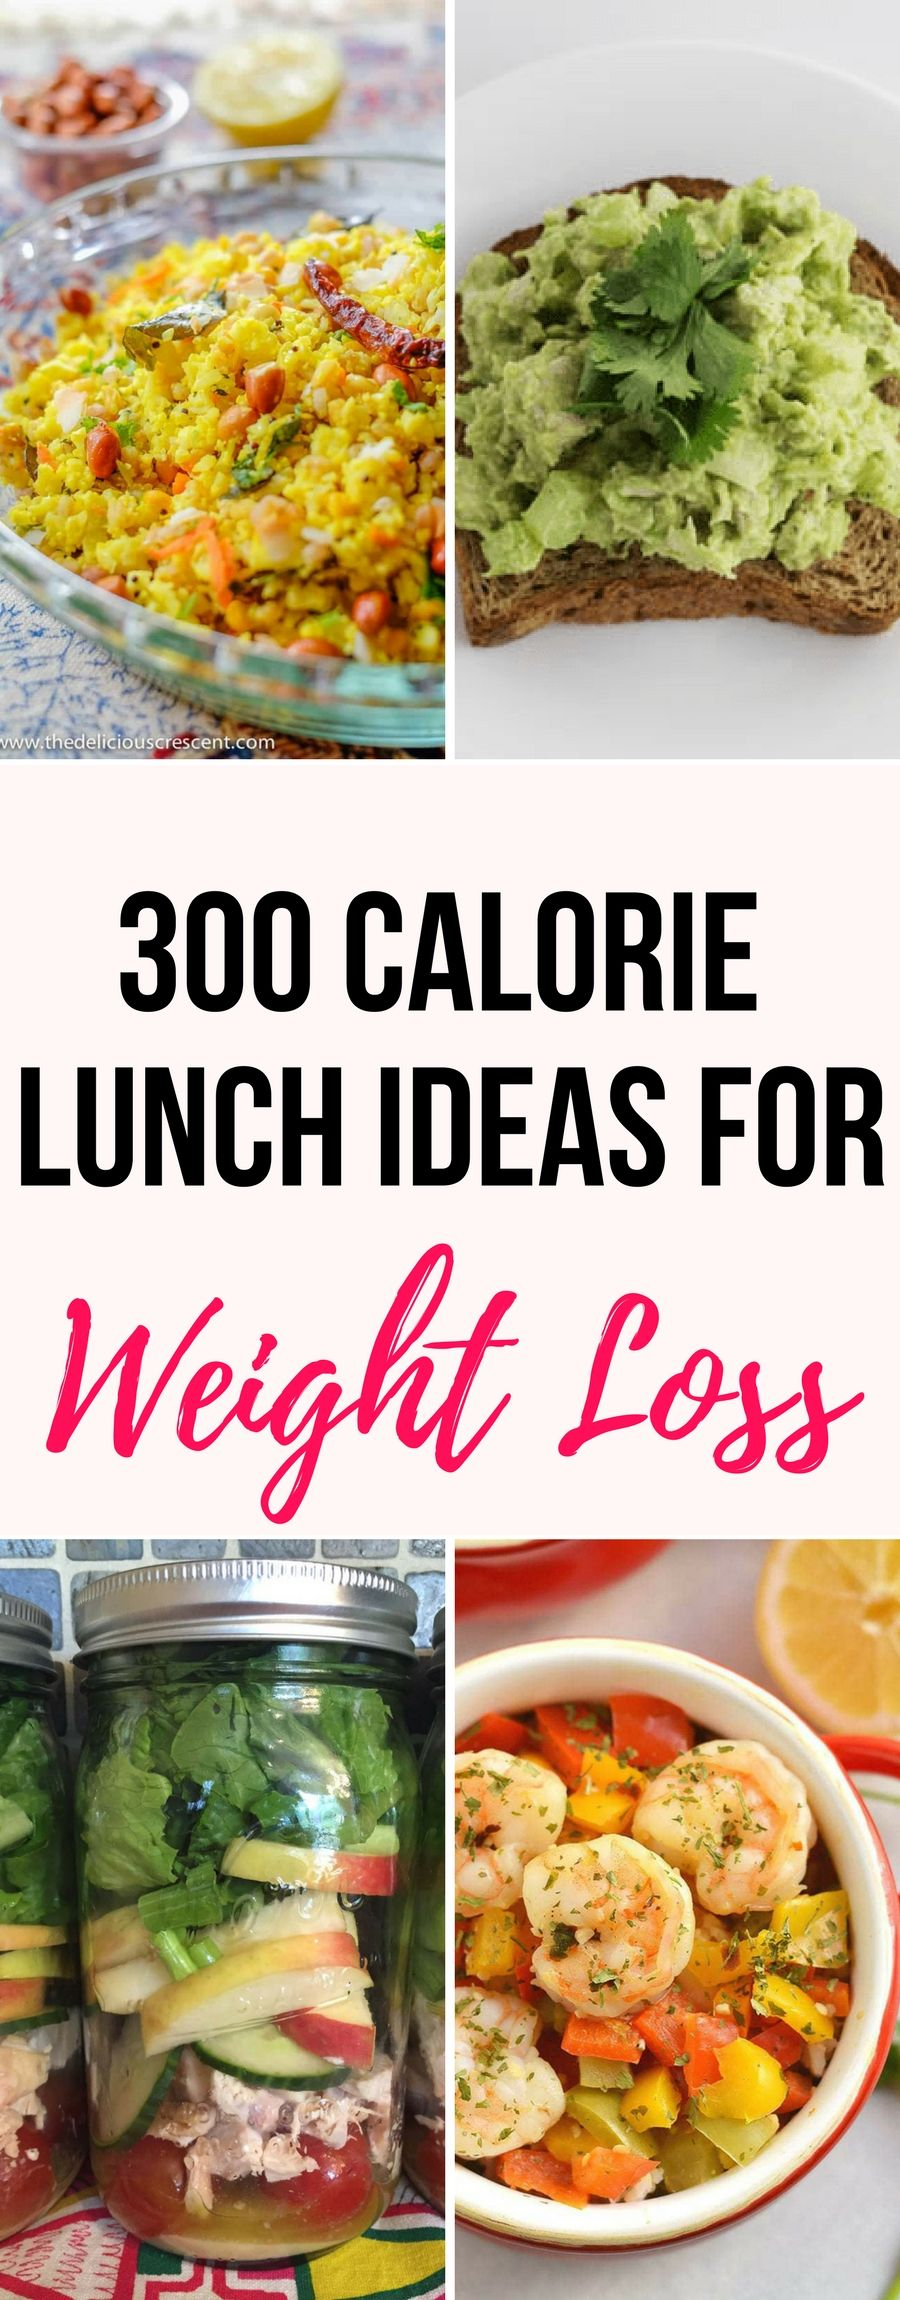 Great Meal Prep Ideas For Lunch Under 300 Calories